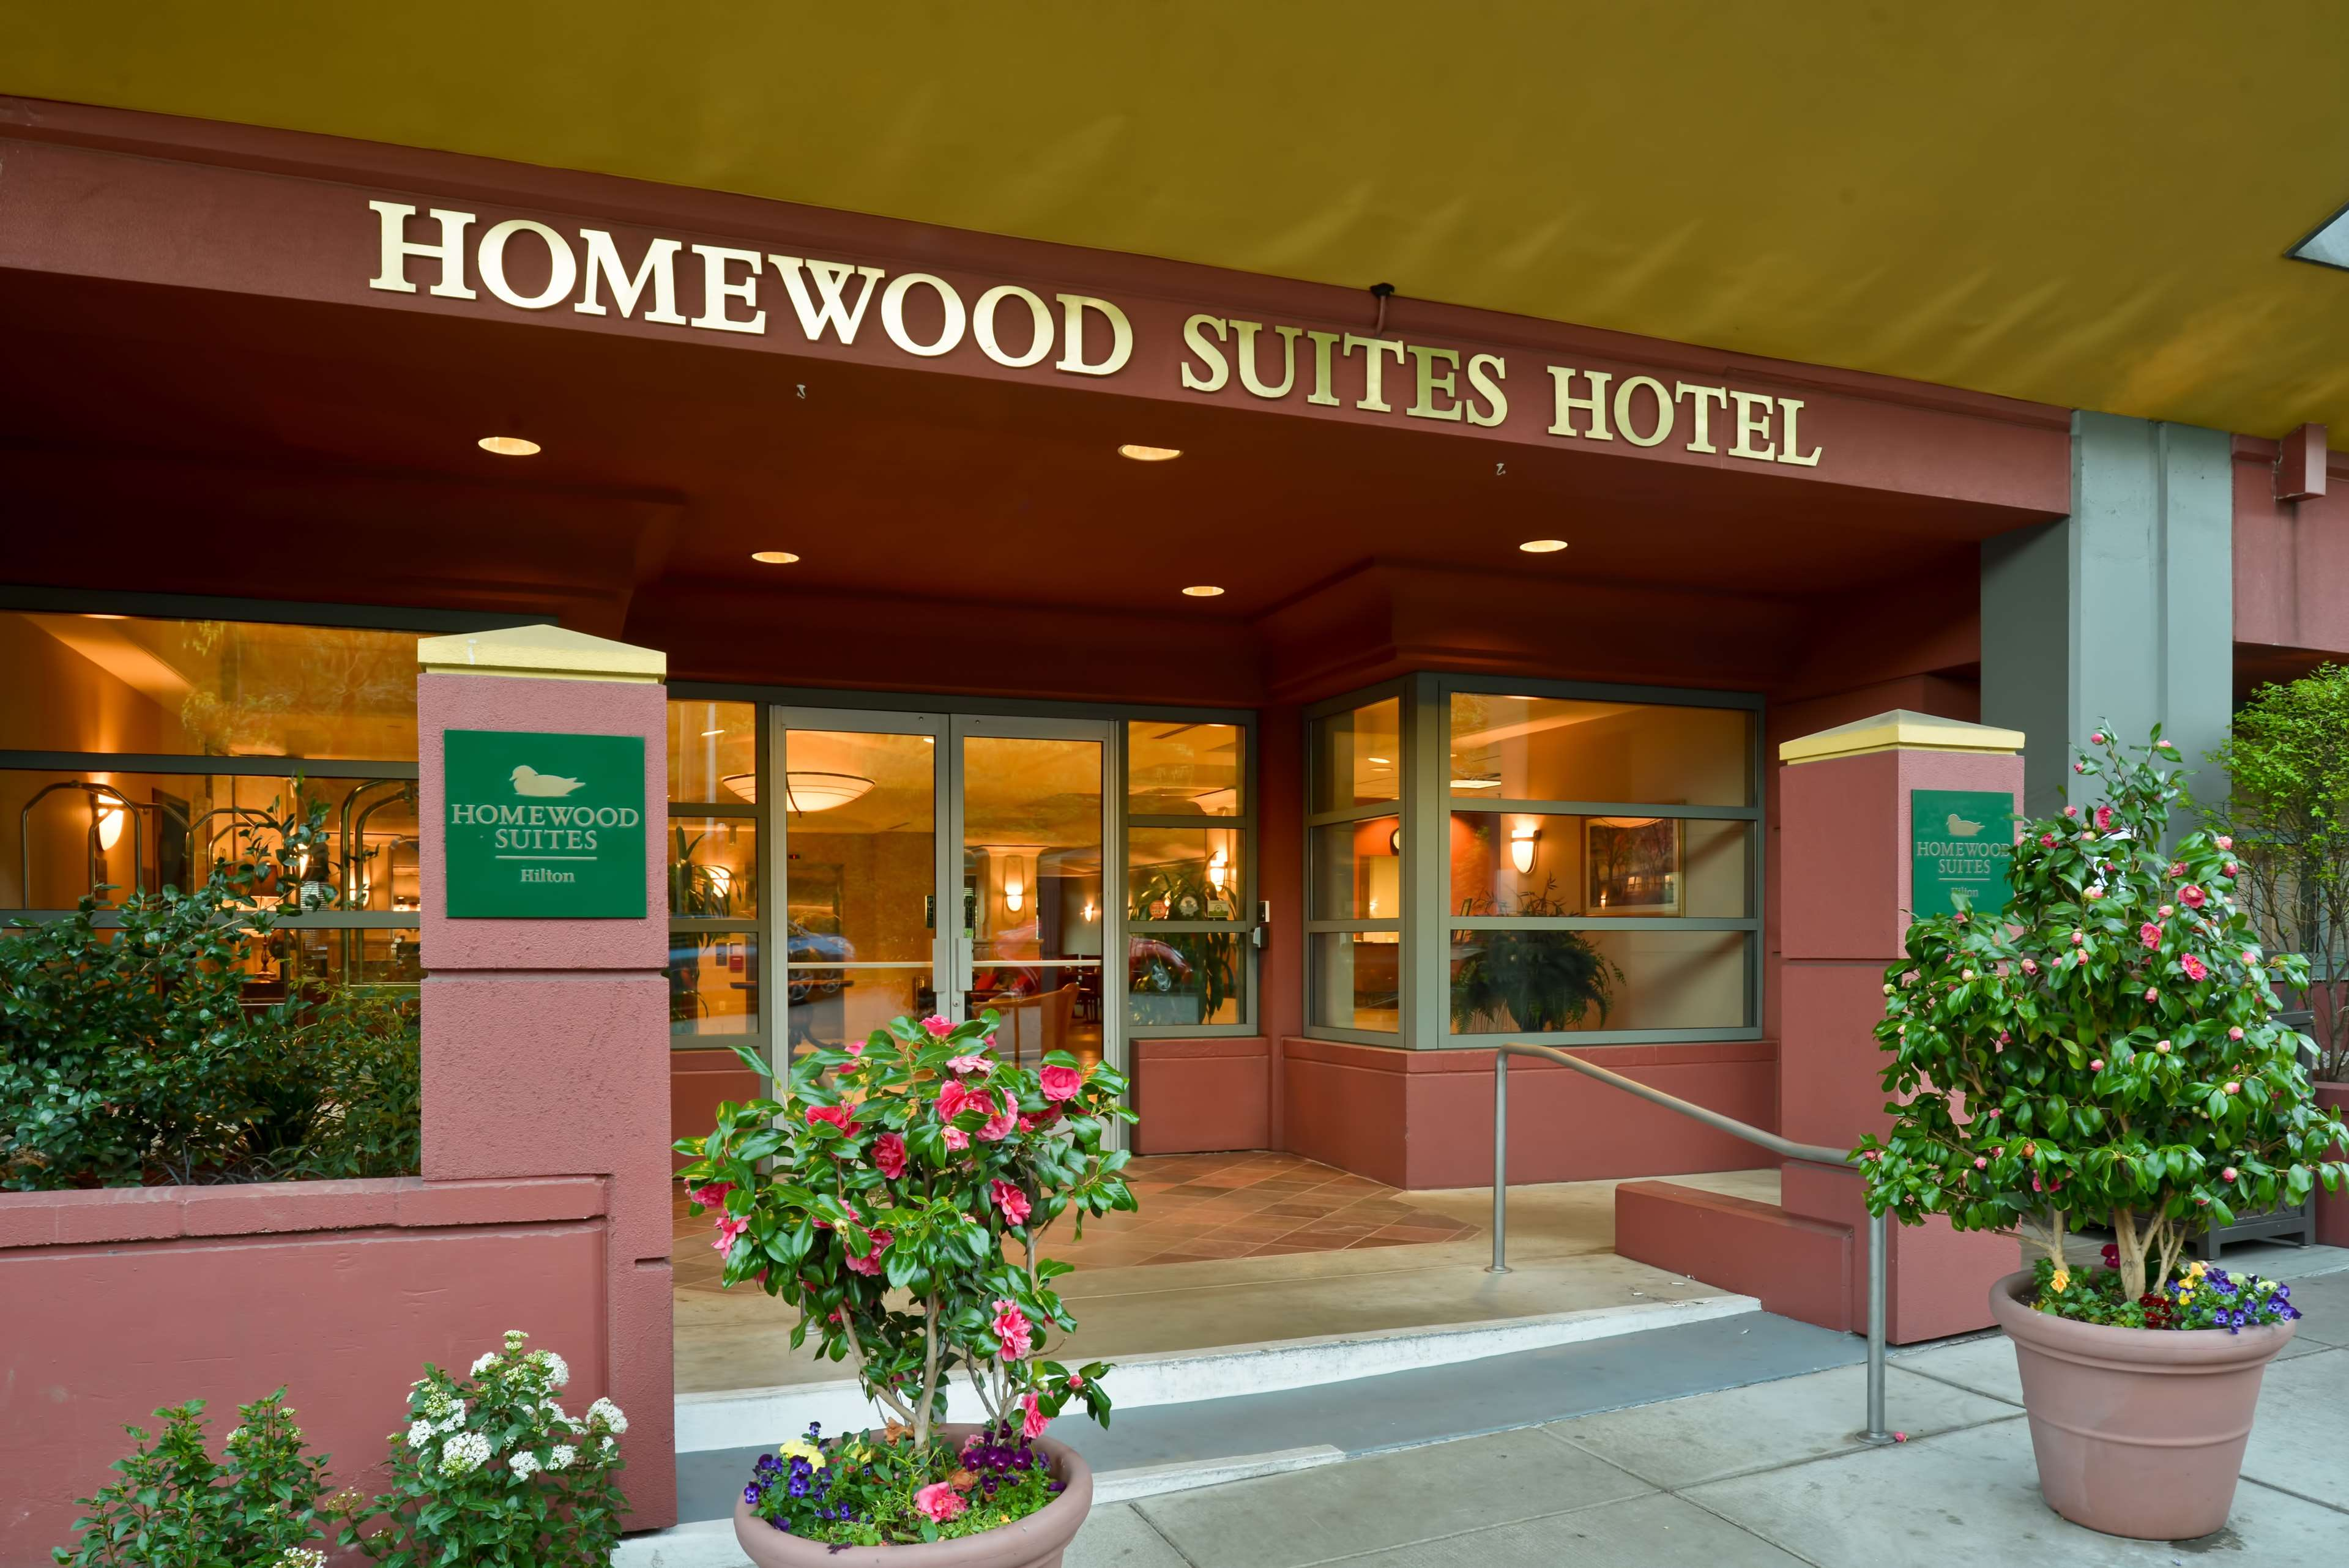 Homewood Suites by Hilton Seattle Downtown image 1